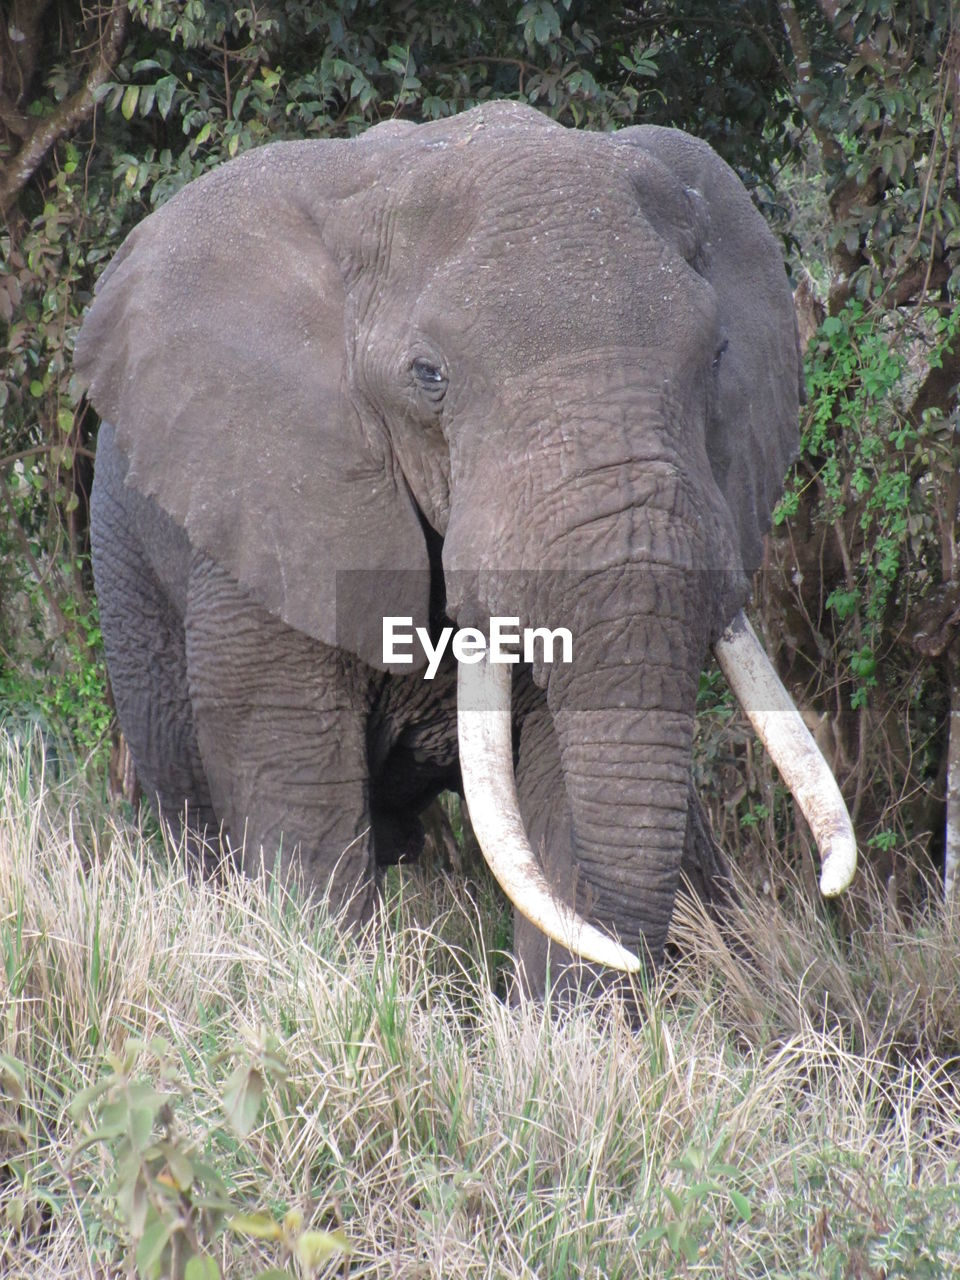 animal themes, animal, elephant, mammal, animals in the wild, animal wildlife, one animal, grass, plant, land, no people, field, day, animal body part, nature, vertebrate, tusk, african elephant, domestic animals, outdoors, animal trunk, herbivorous, animal head